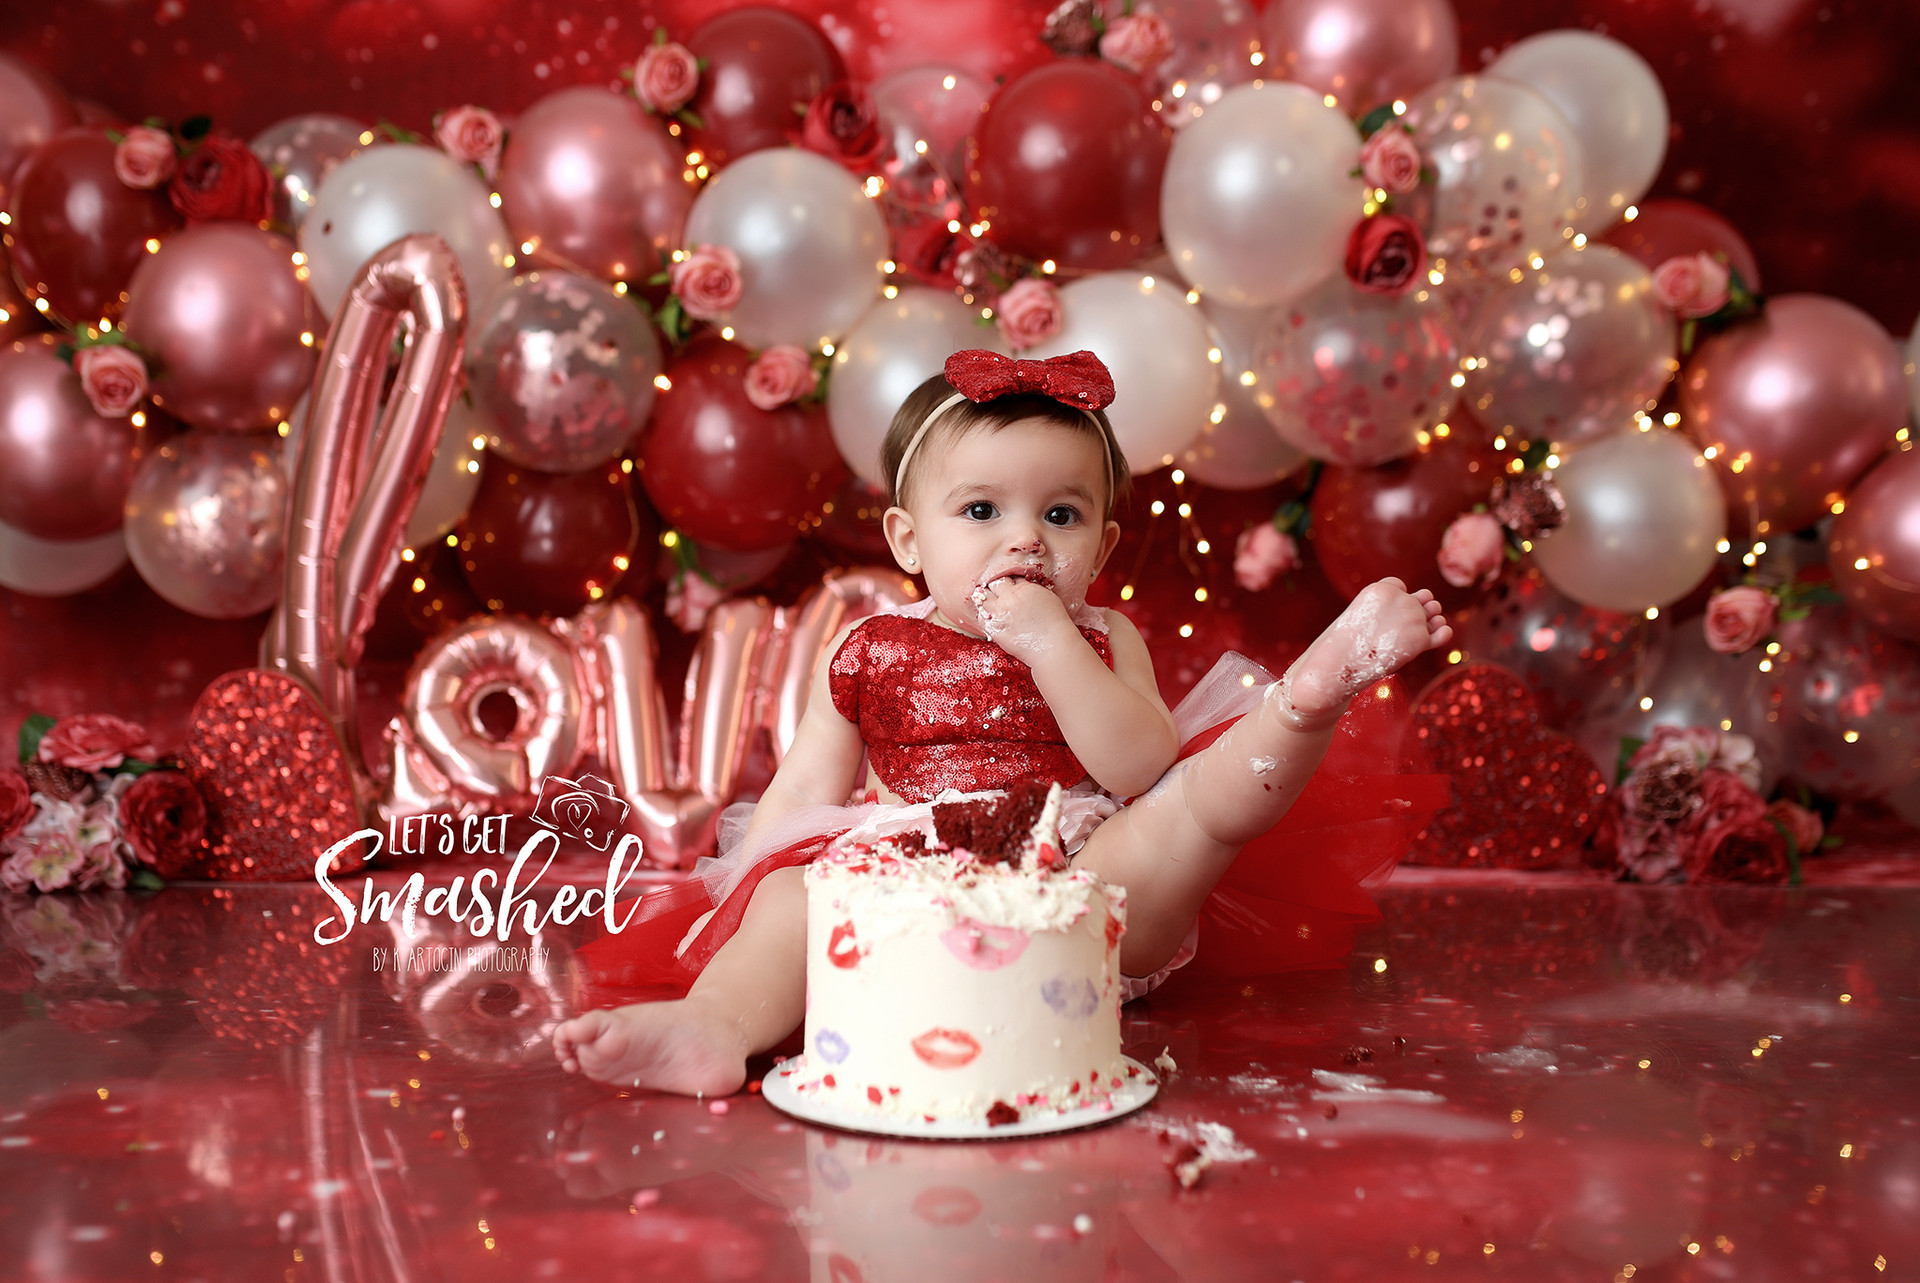 South Jersey Cake Smash photographer, Valentine's Day, Love, Heart Smash, floral, rormance, girl theme, balloon garland